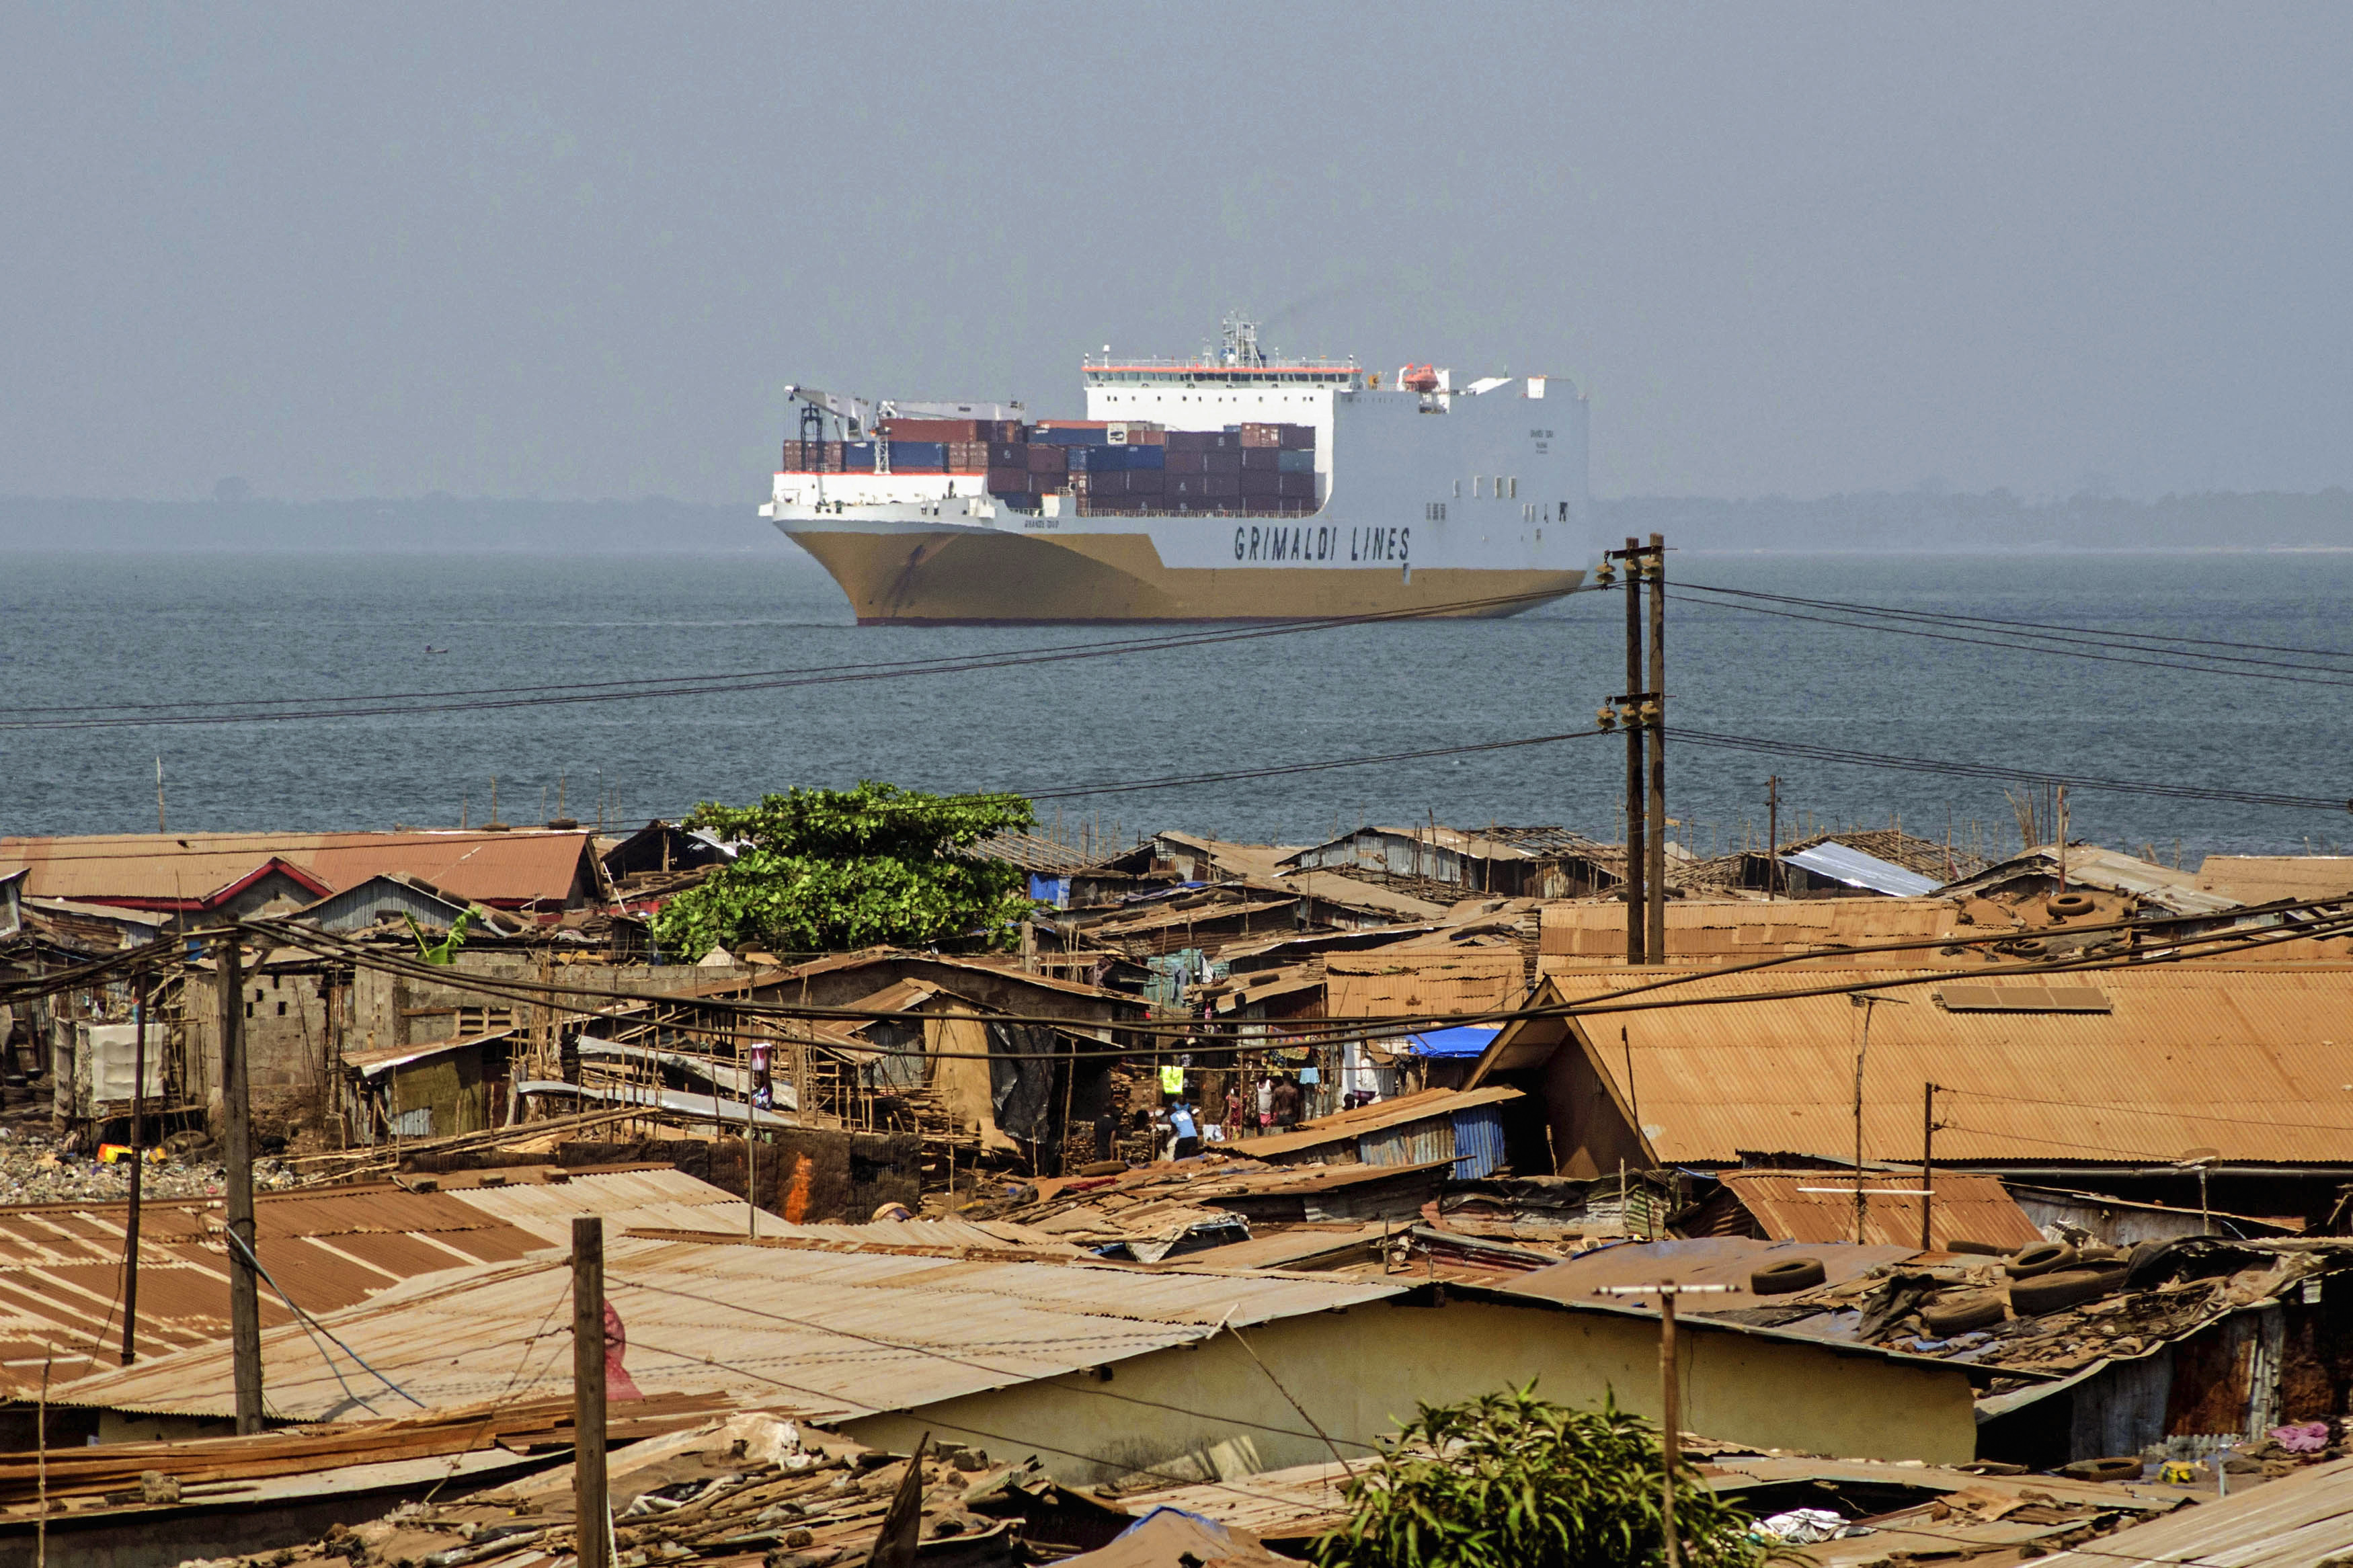 A cargo ship crosses behind Kroo Bay slum in Freetown, January 23, 2014. As evening falls over Sierra Leone's Banana Island archipelago, bats stream from their beachside roosts to circle in their thousands over the jungle village of Dublin. Below them a struggle is playing out over an unexpected commodity - the lowly sea cucumber, a fleshy, sausage-shaped creature that scavenges for food on the seabed. While the Banana Islanders have no use for sea cucumbers, in China they are prized for their medicinal properties and as a natural aphrodisiac. Picture taken January 23, 2014. To match Feature LEONE-SEACUCUMBERS/     REUTERS/Tommy Trenchard (SIERRA LEONE - Tags: ANIMALS BUSINESS FOOD SOCIETY POLITICS MARITIME) - RTR3NHJC